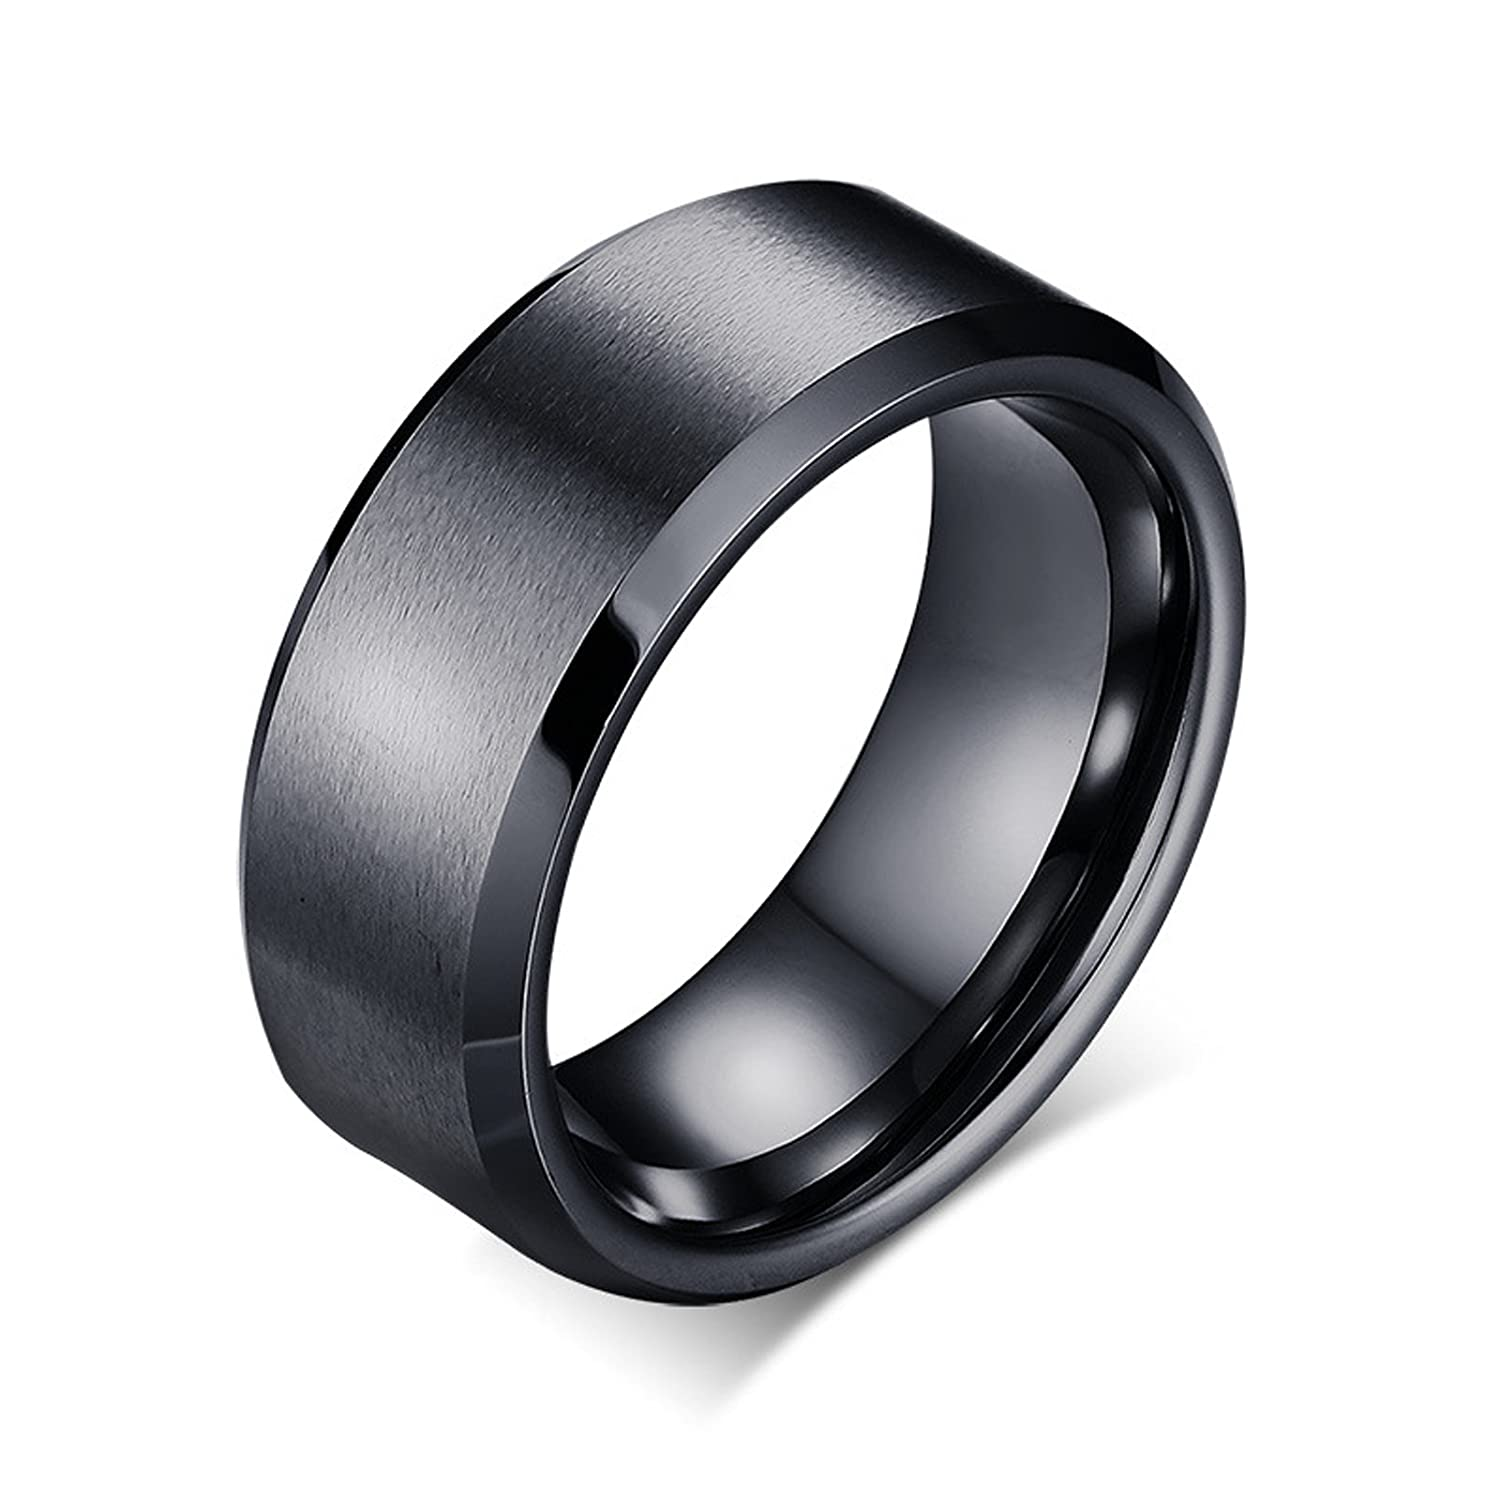 Bishilin Engraved Rings for Men Stainless Steel Wedding Band for Men Black Ring Size 5